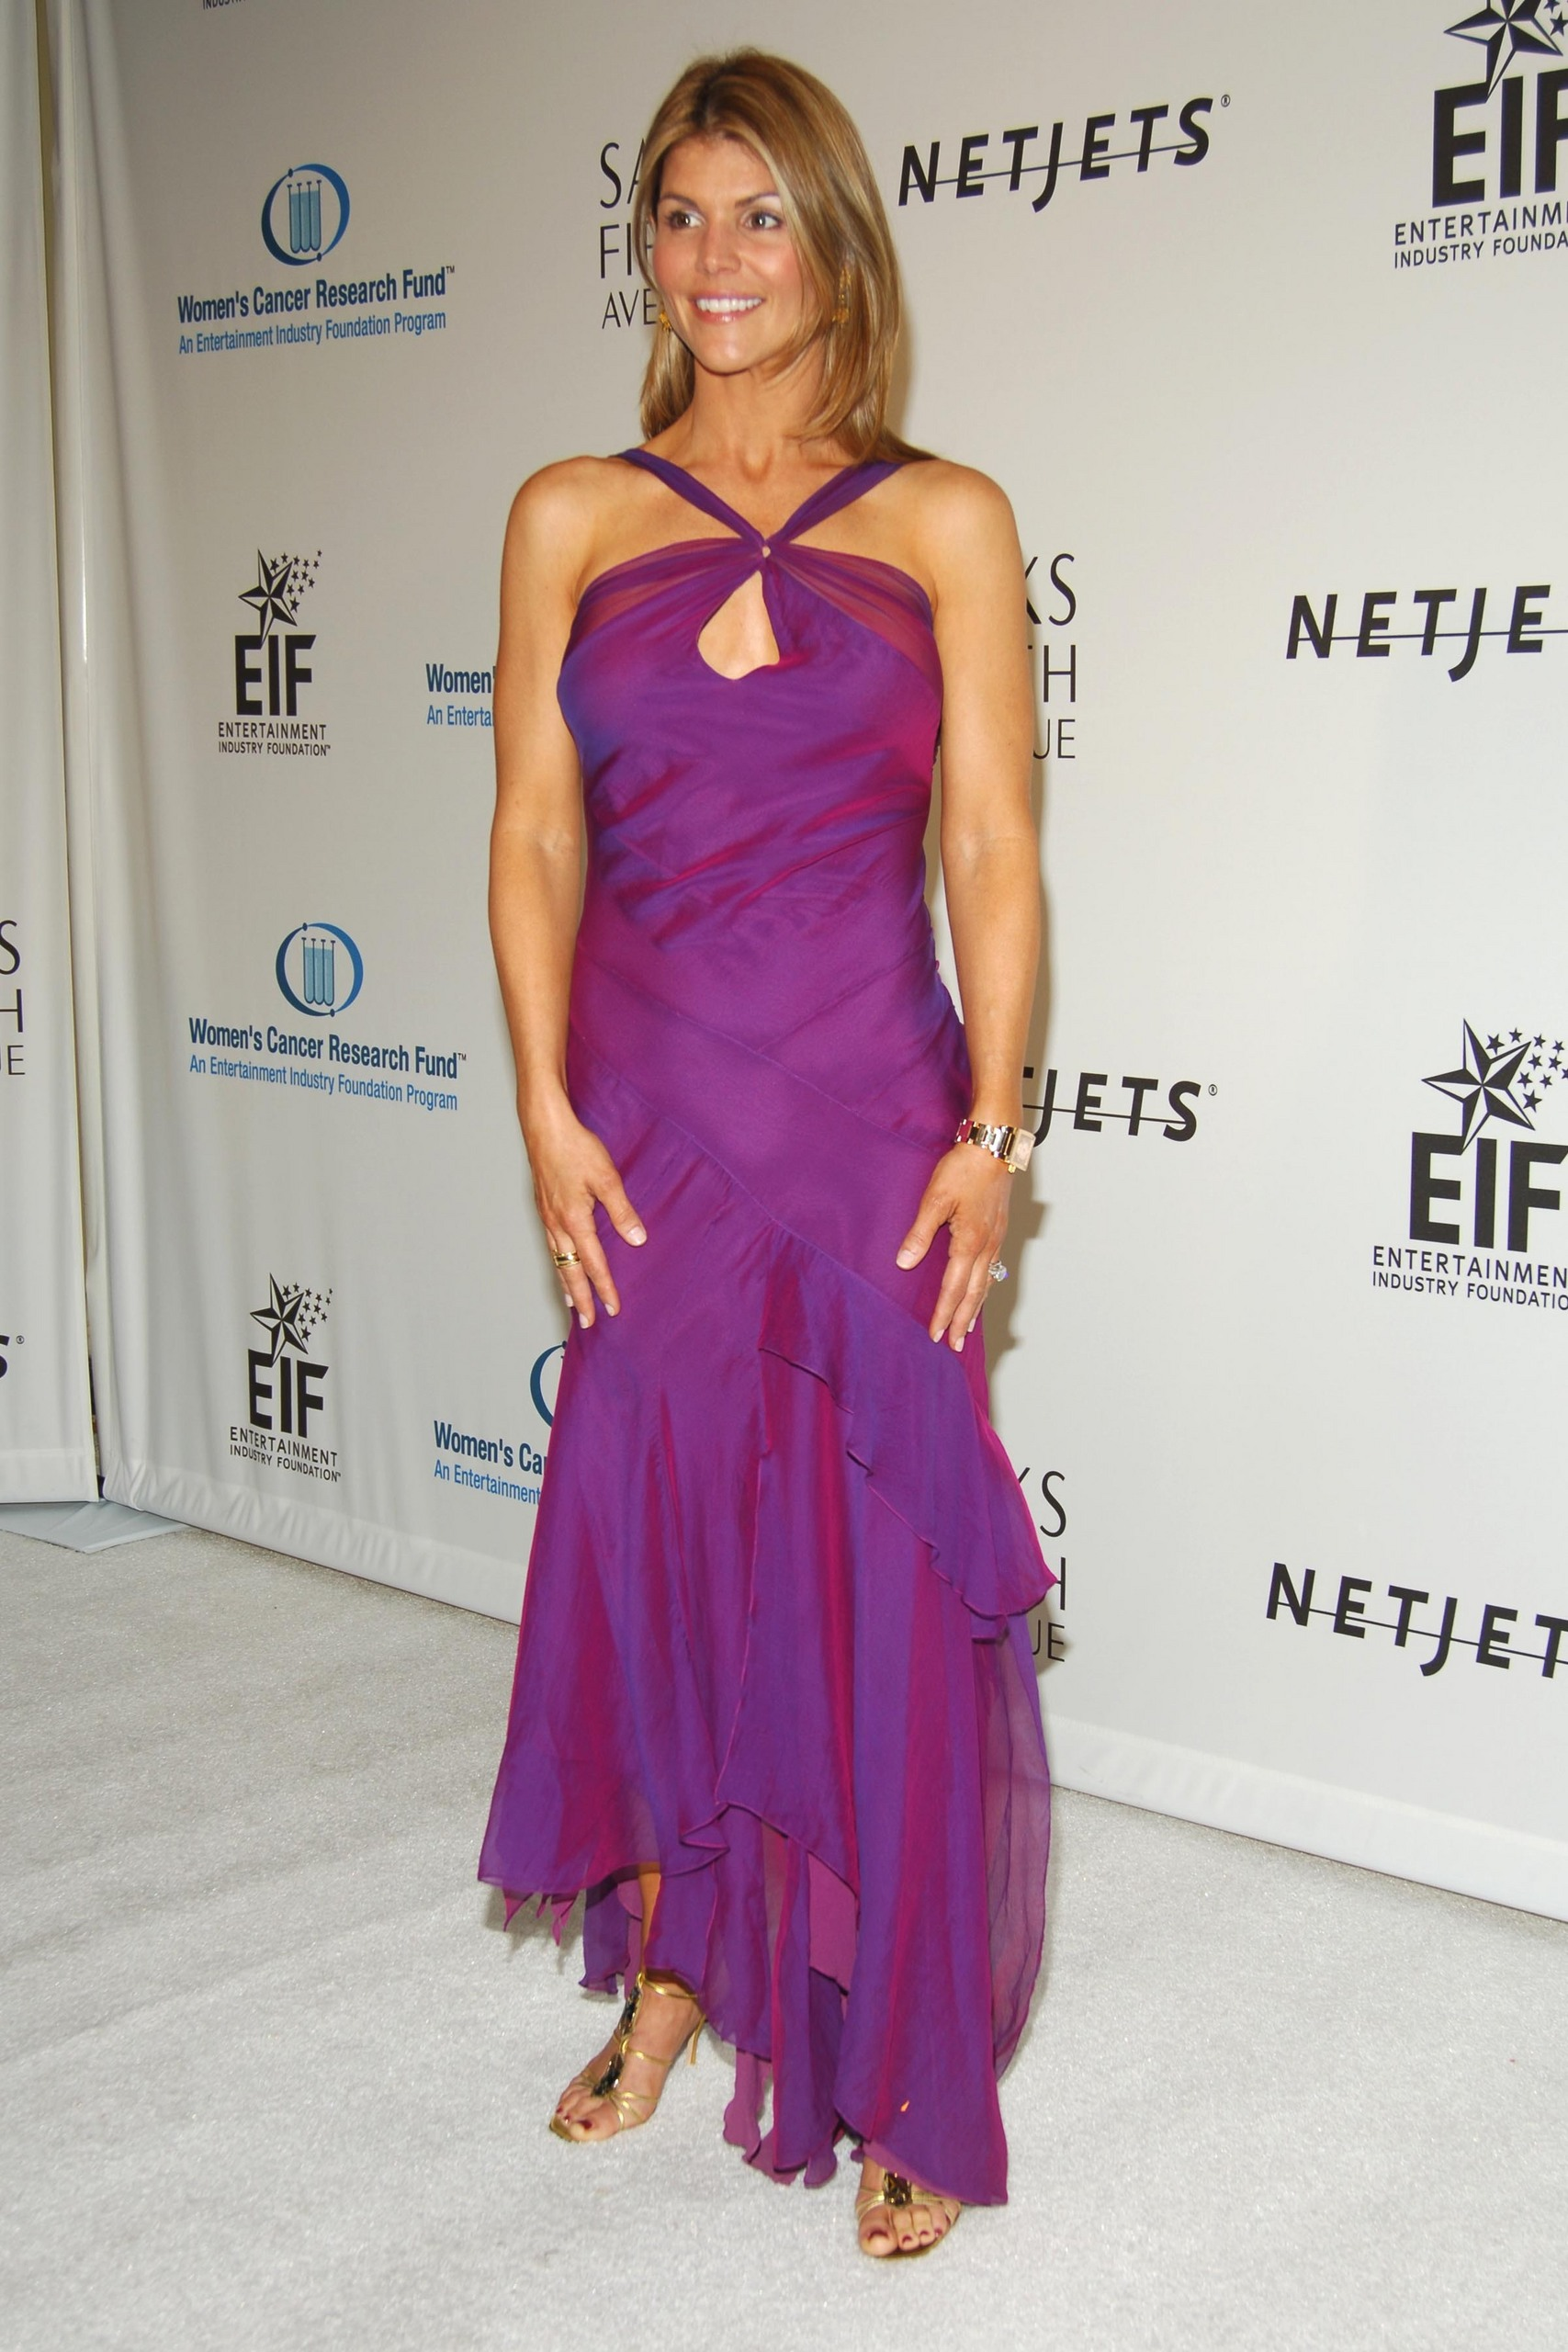 Lori Loughlin Images Saks Fifth Avenues Unforgettable Hd Wallpaper